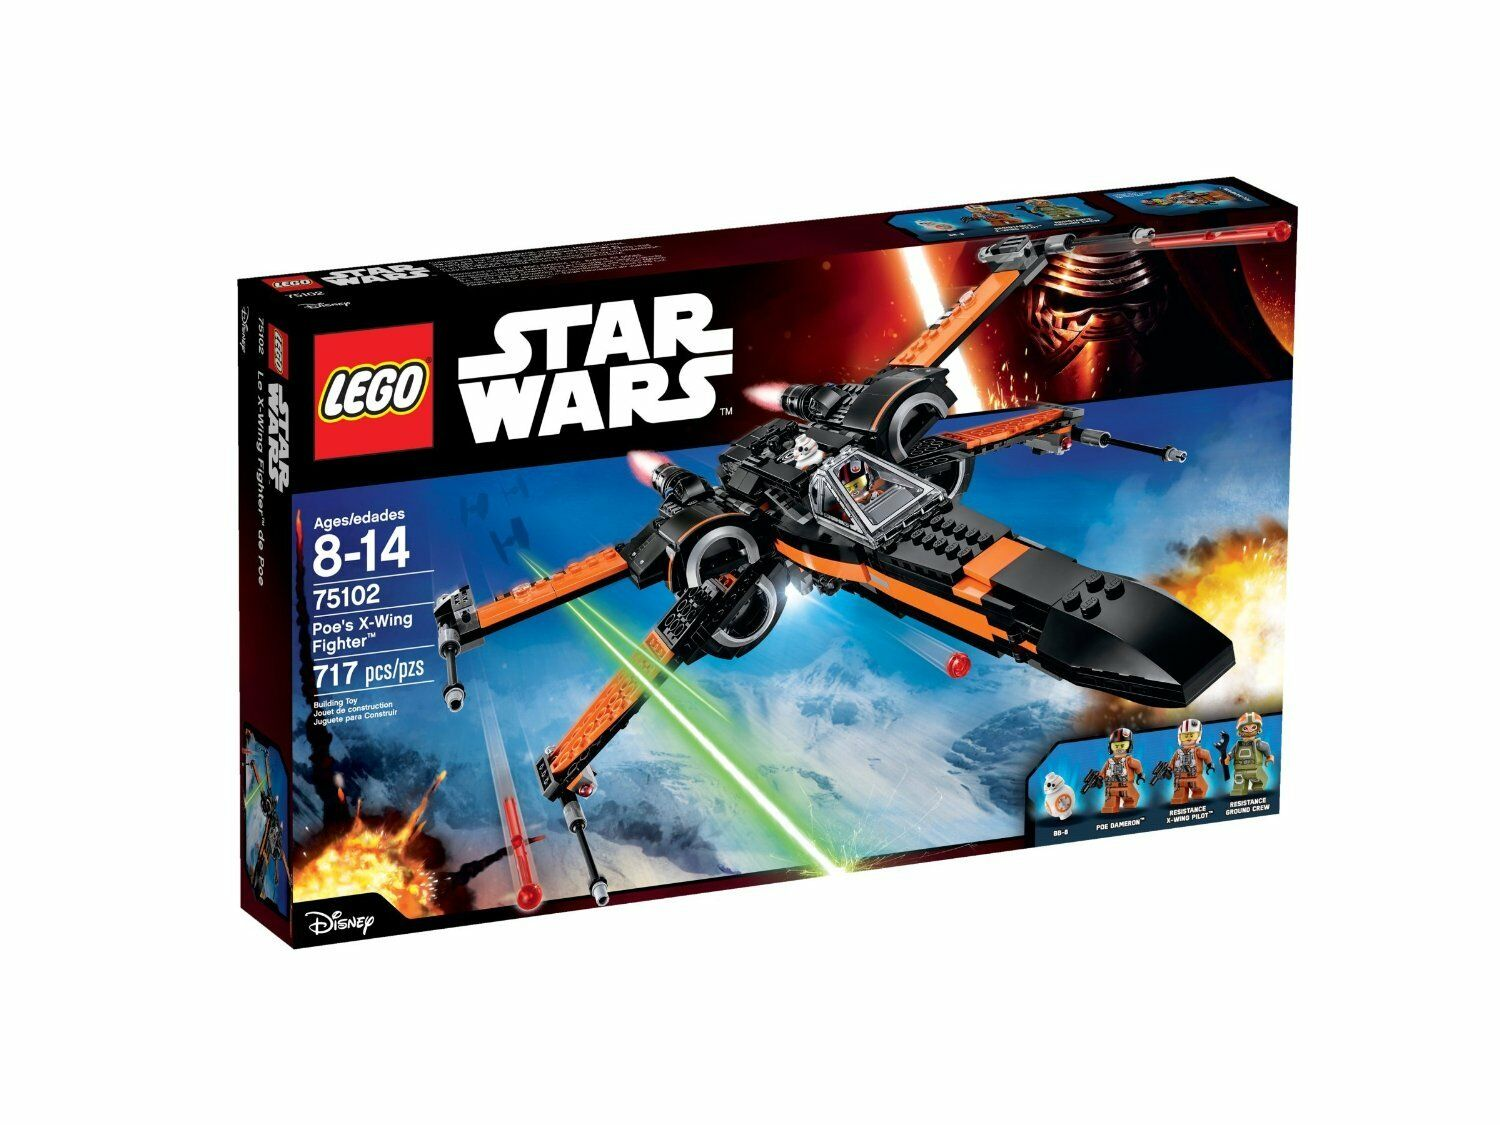 LEGO Star Wars Poe's X-Wing Fighter 75102 - retired